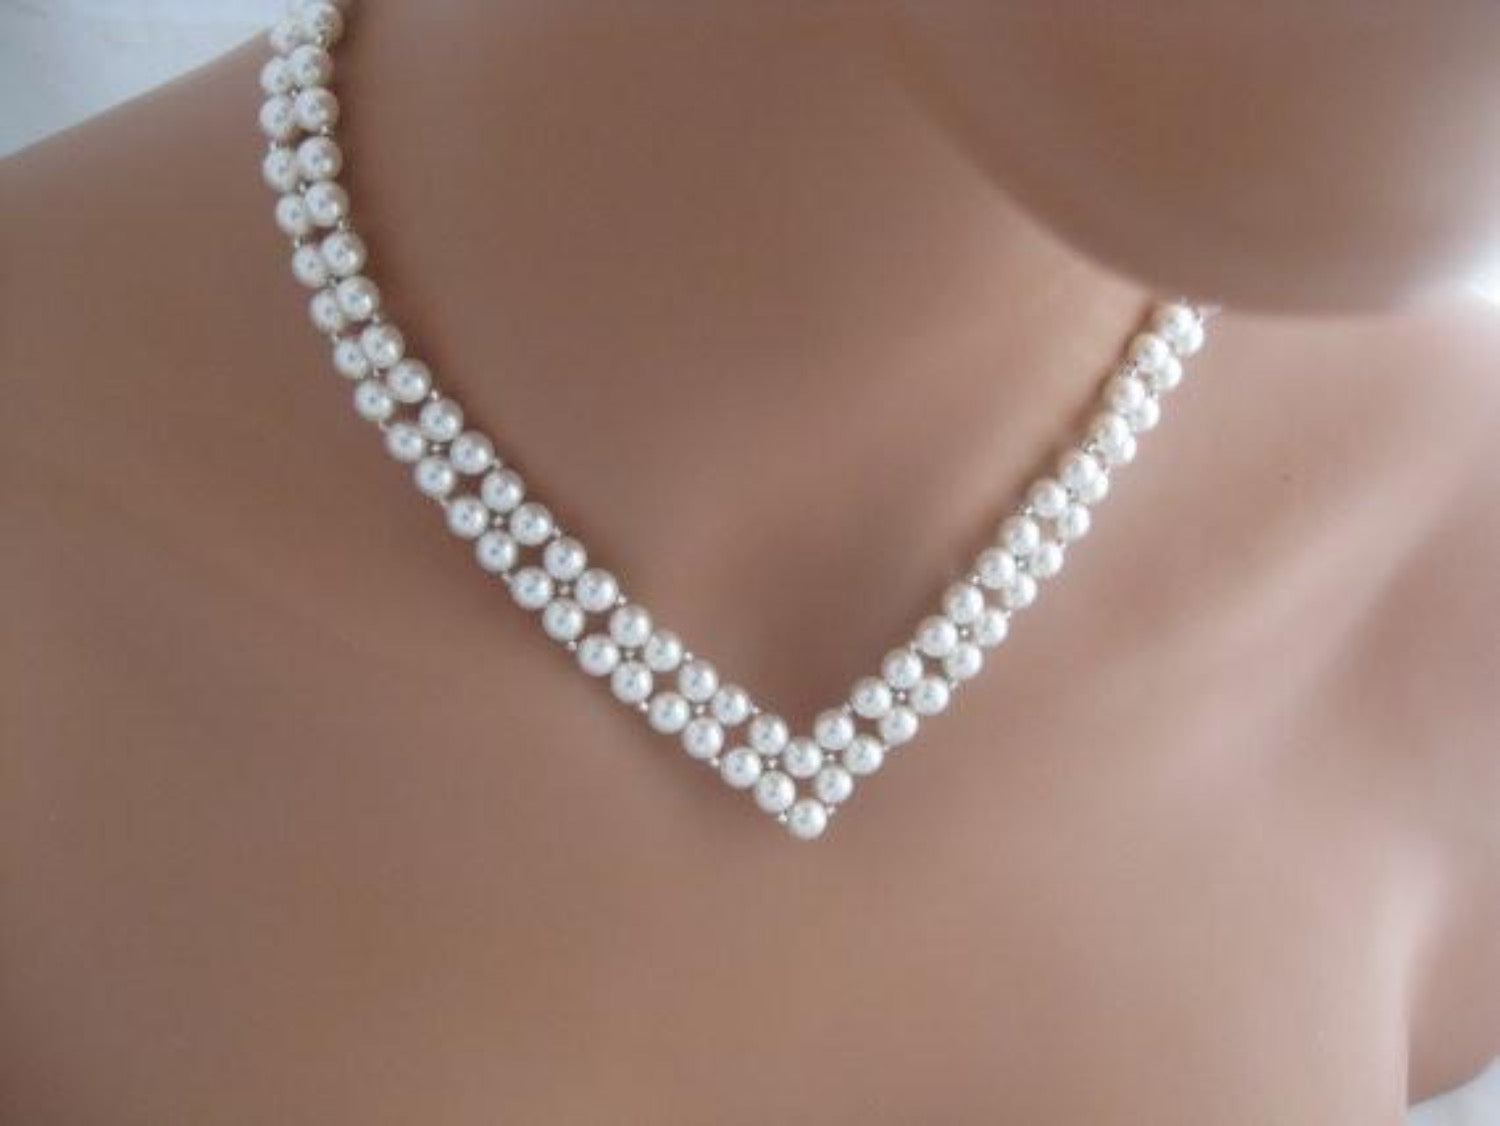 V Shaped Bridal Necklace Wedding Jewelry Pearl Necklace - Clairesbridal - 3